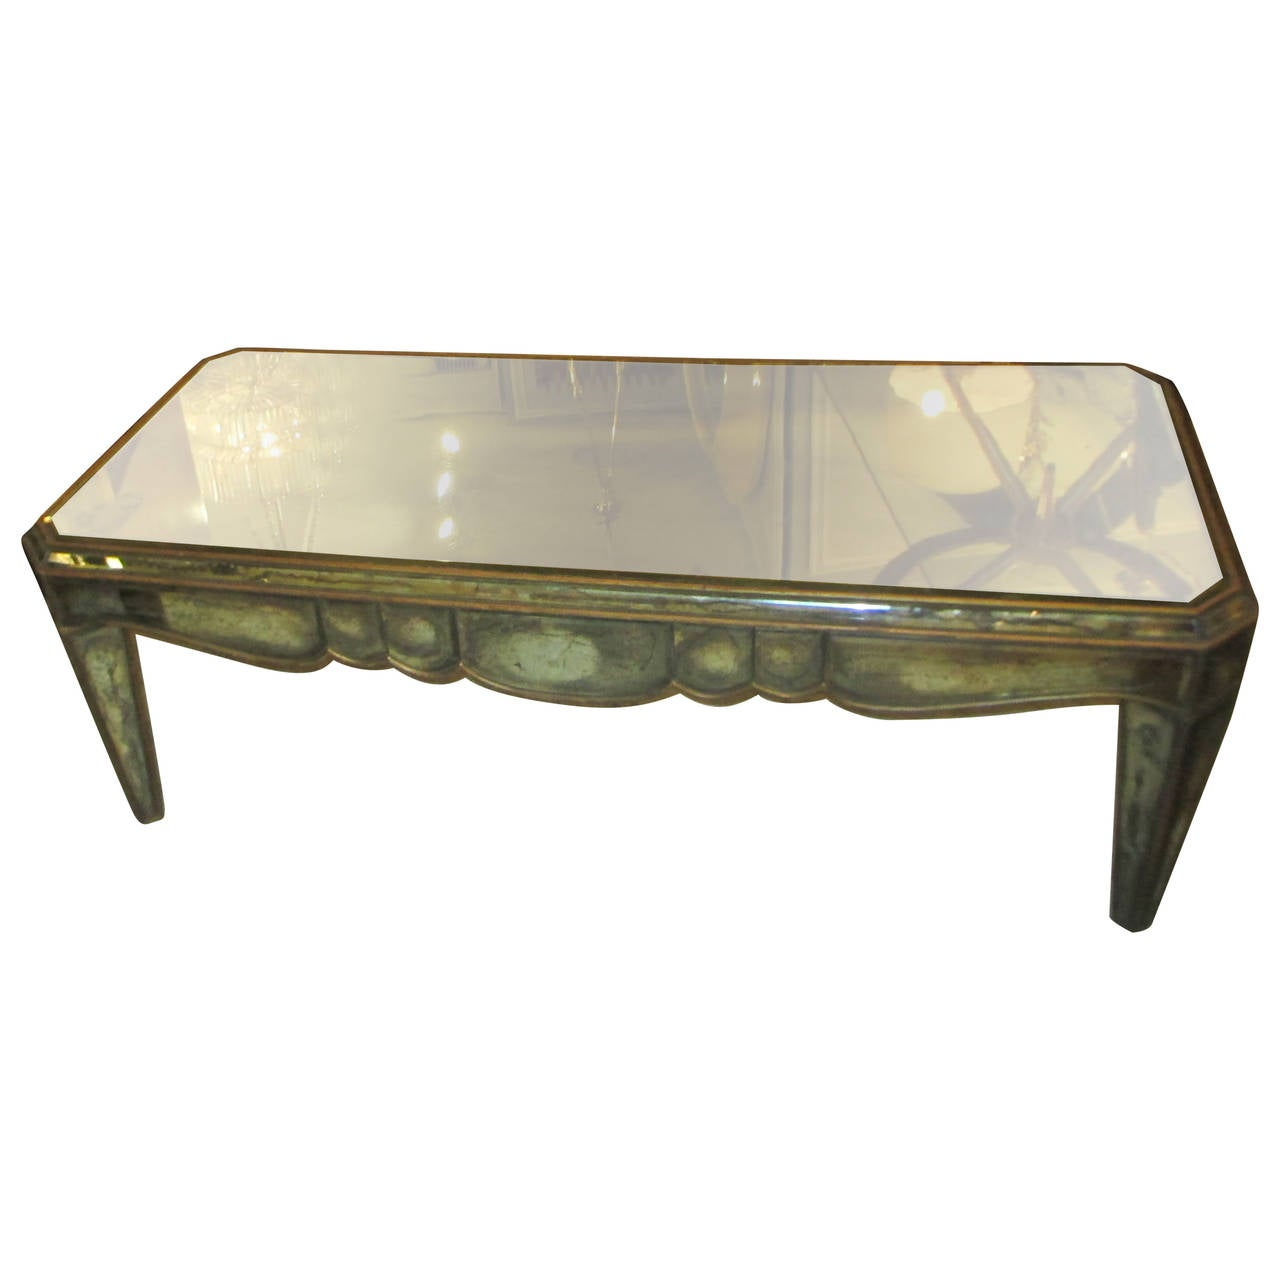 Mirrored Coffee Table In The Neo Baroque Manner For Sale At 1stdibs